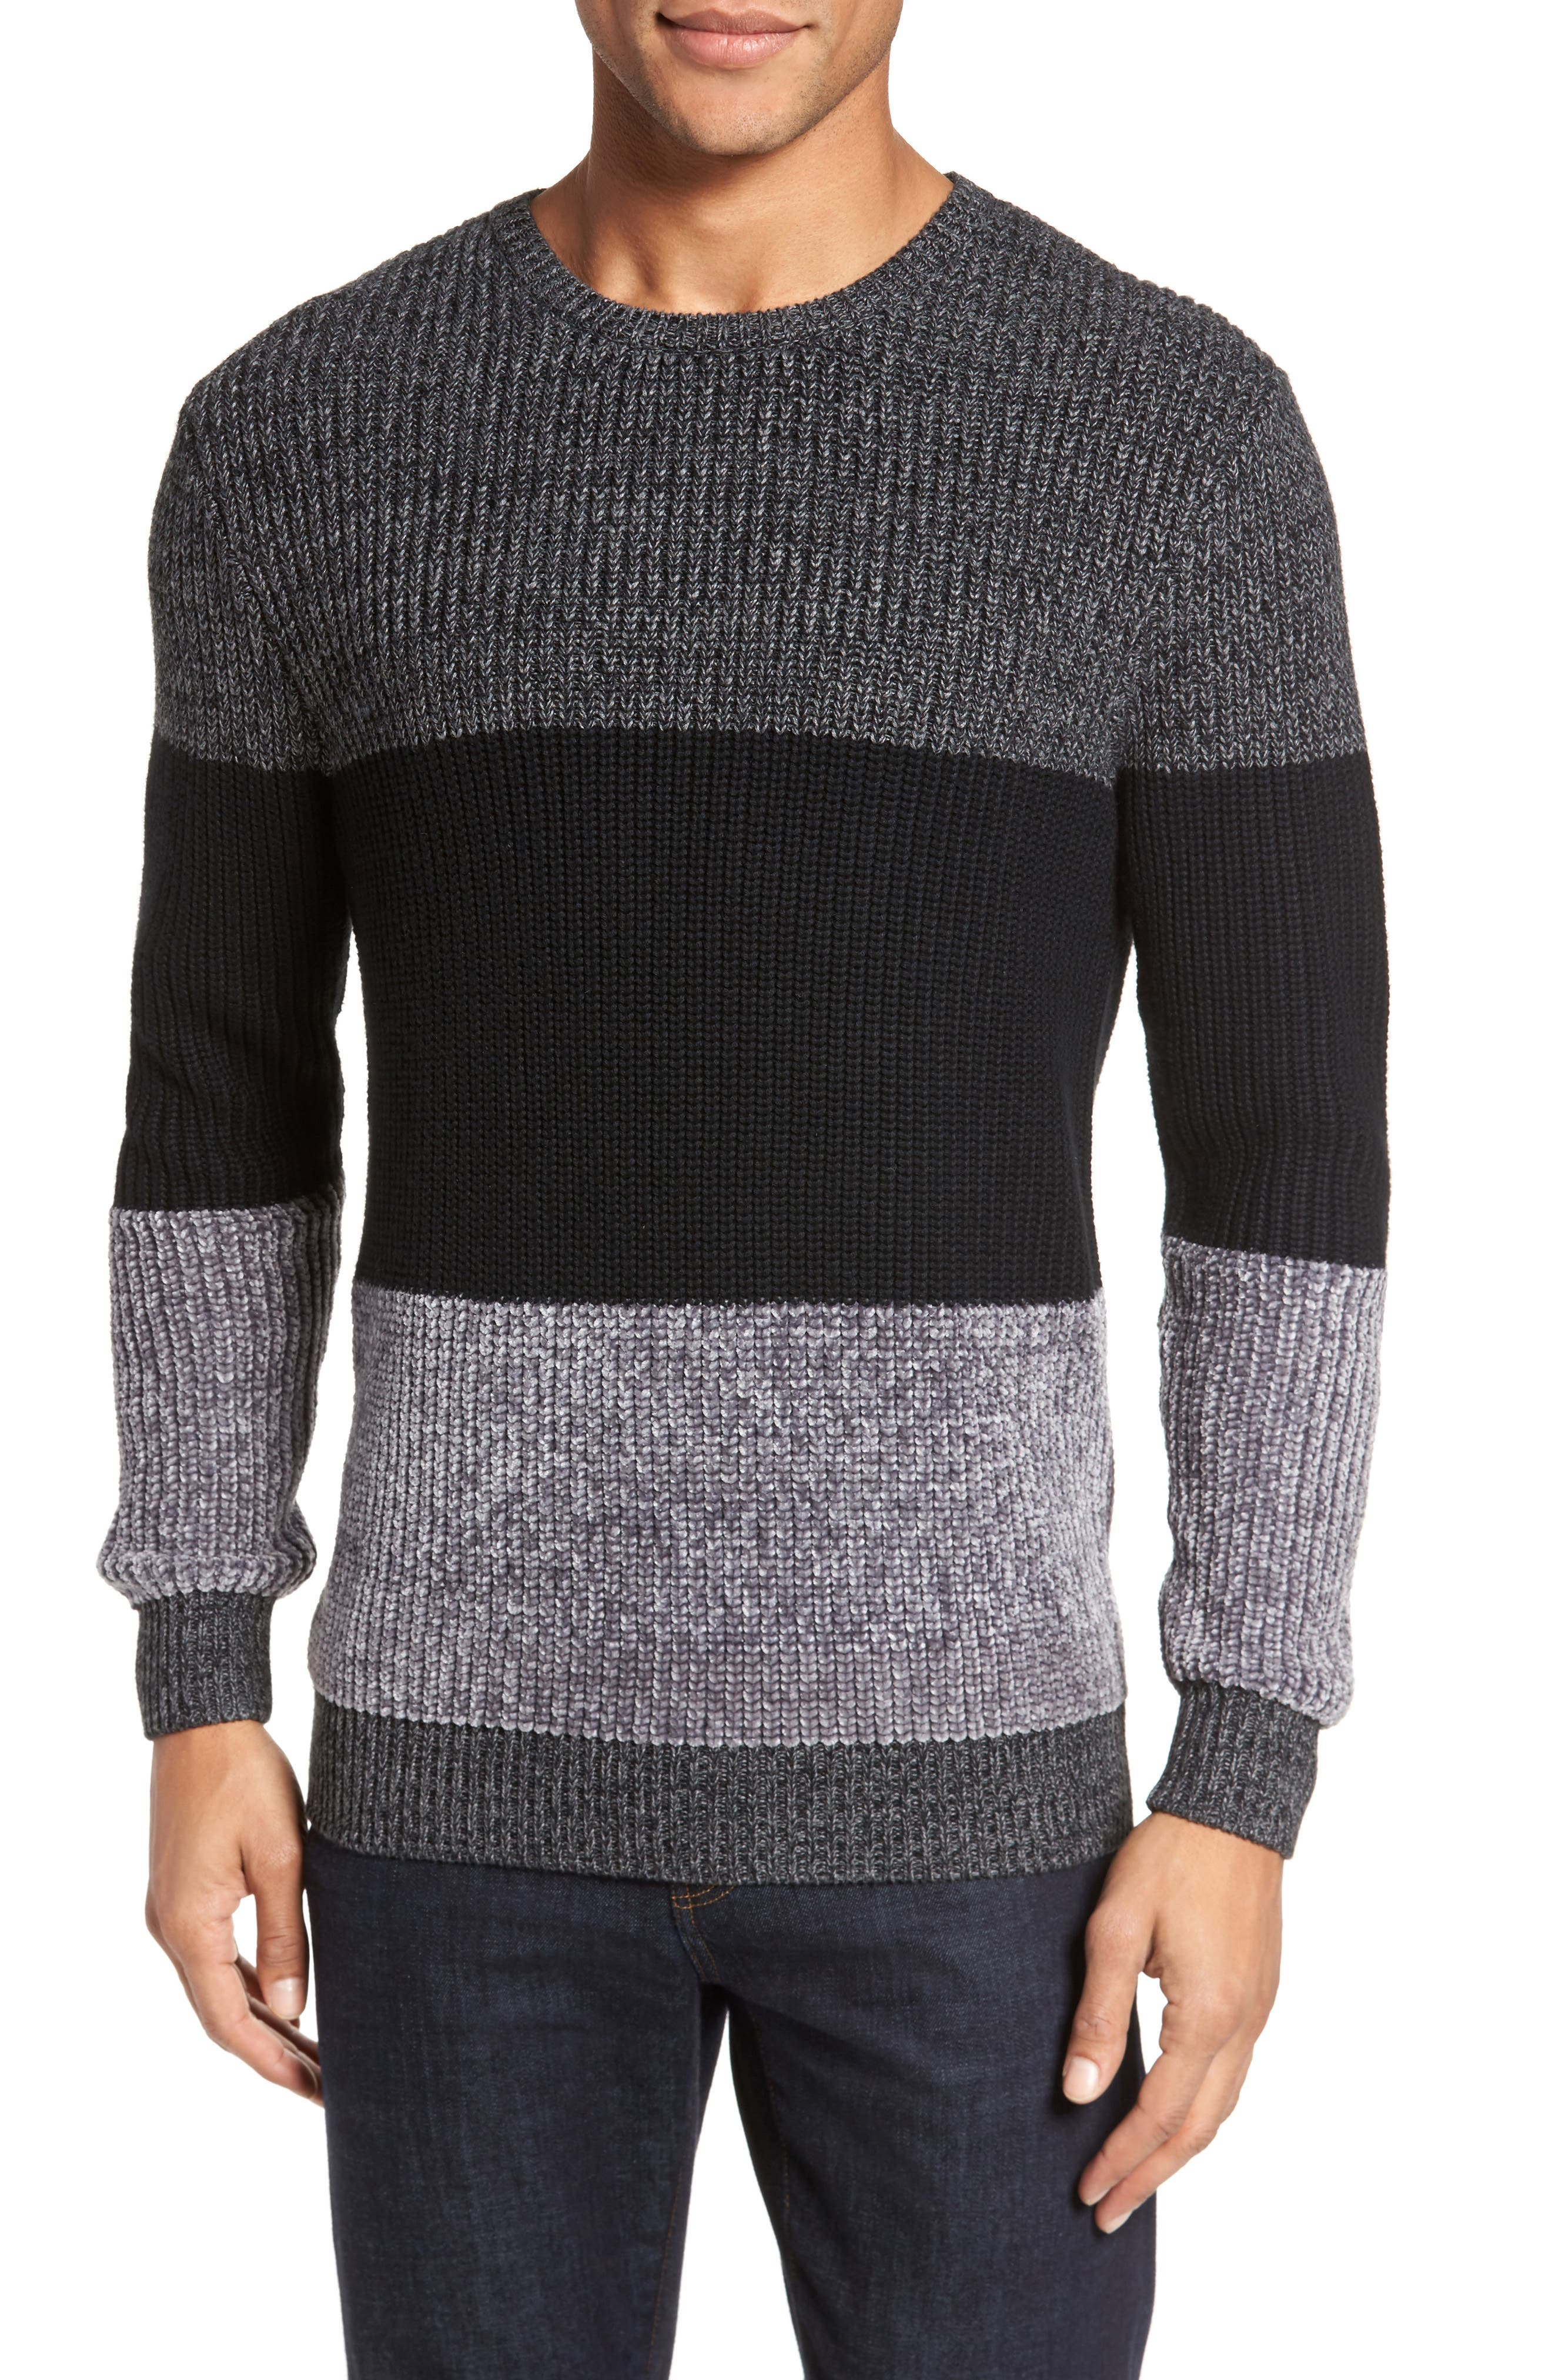 Alternate Image 1 Selected - Vince Camuto Colorblock Chenille Sweater